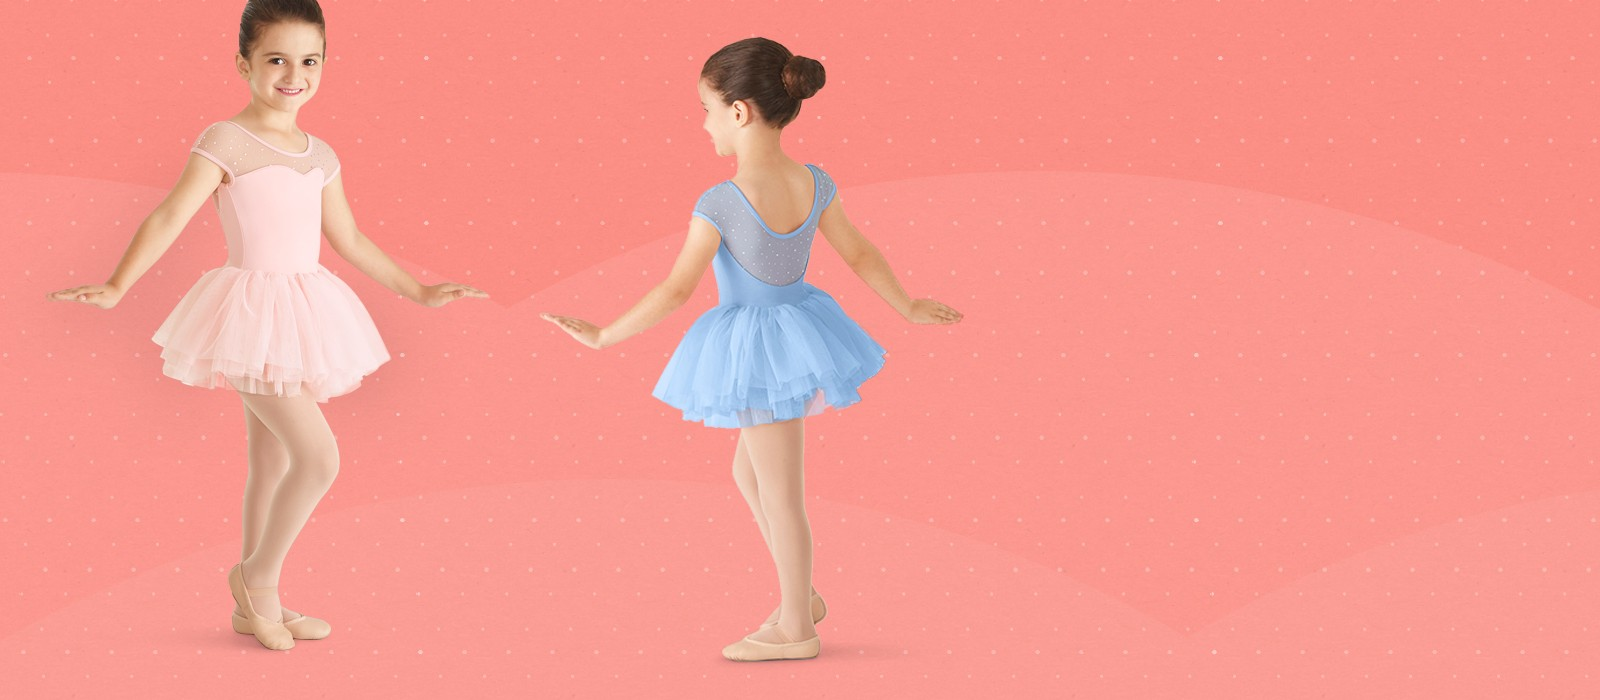 image - Dance and ballet wear for your little dancers wardrobe.